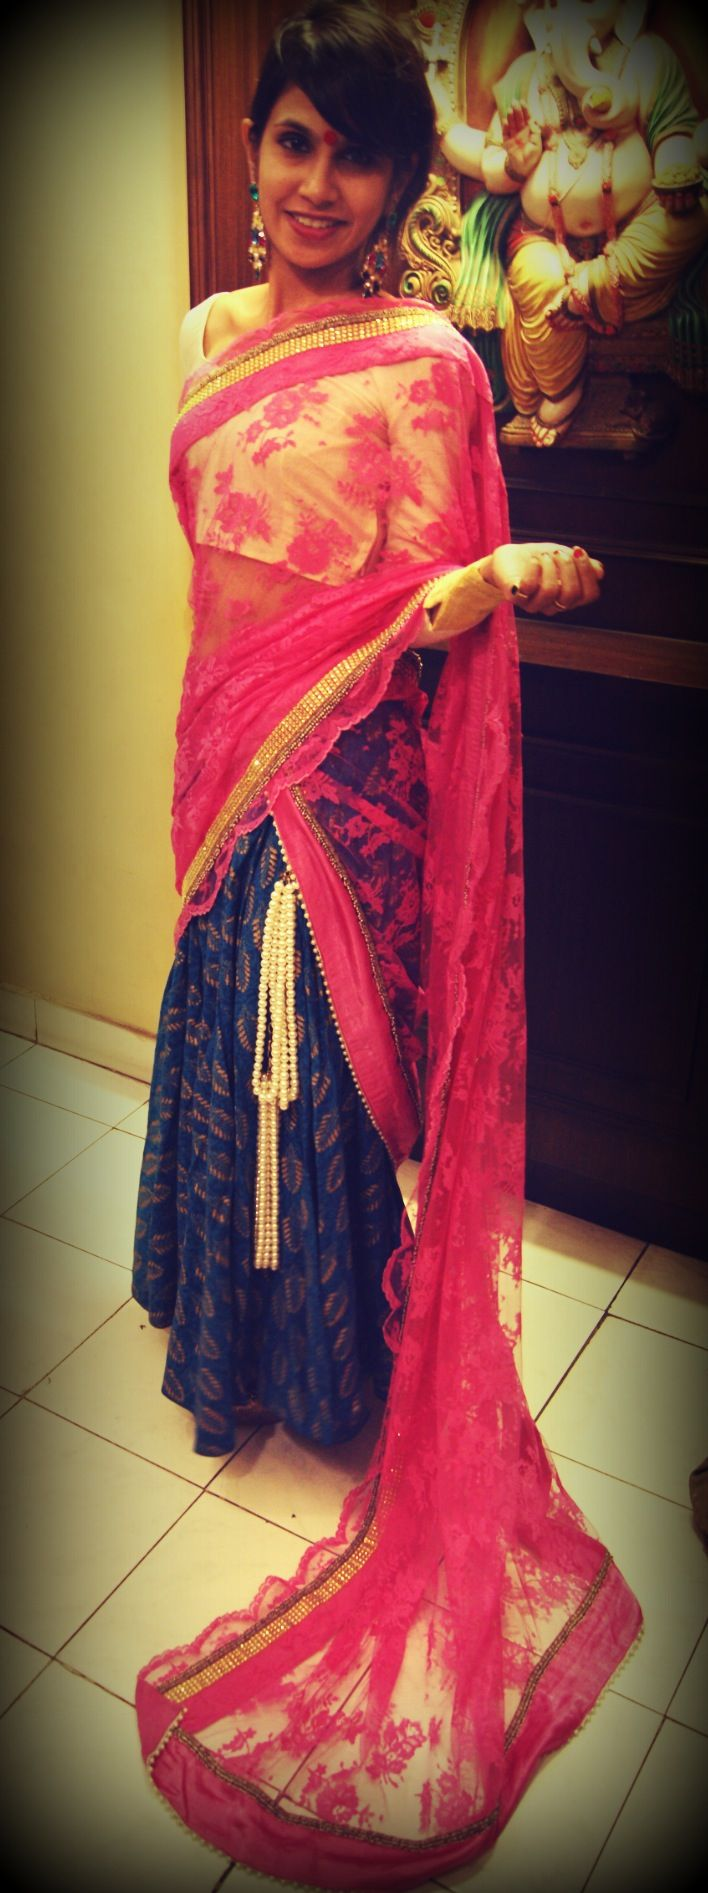 Lengha by Ayush Kejriwal , for purchase enquires email at ayushk@hotmail.co.uk or find my Facebook page - Ayush Kejriwal